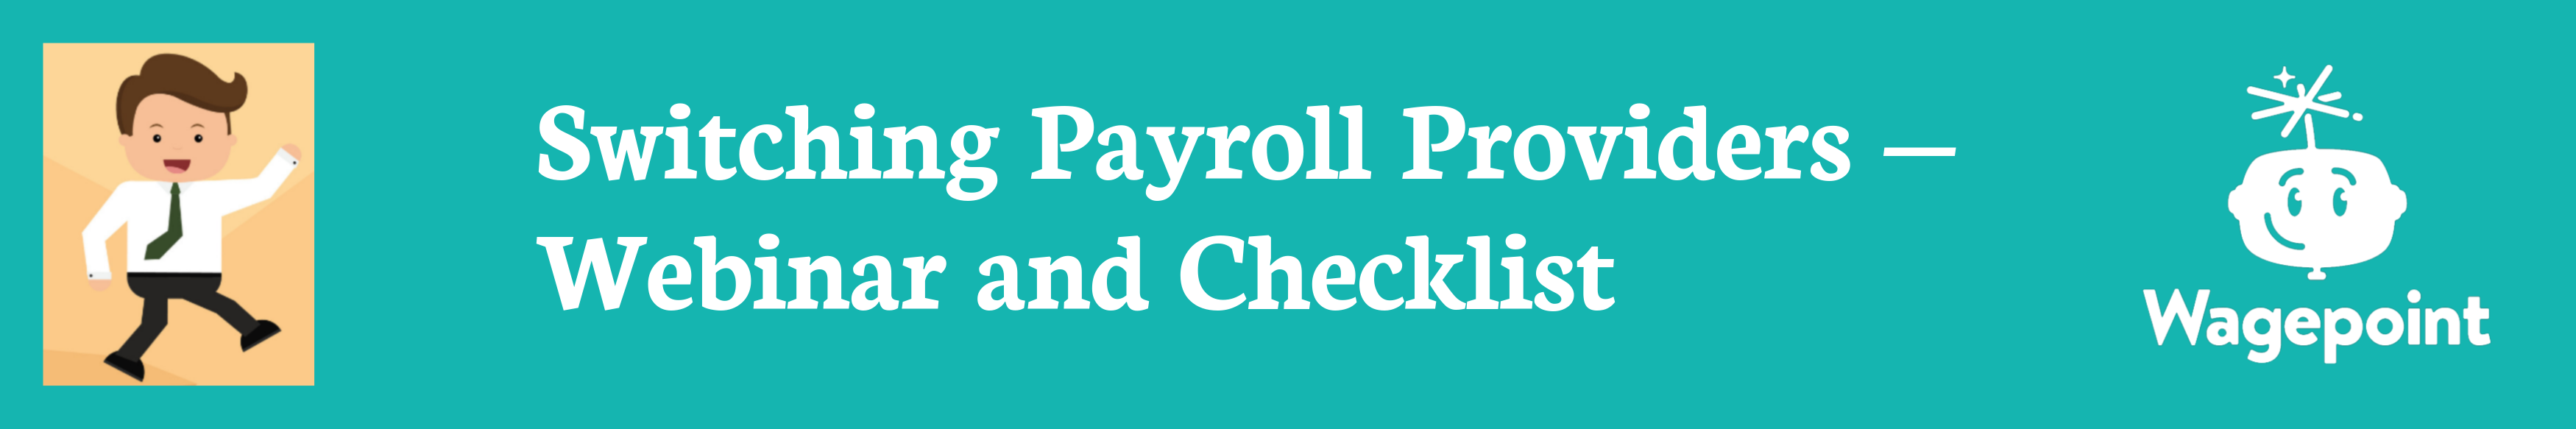 wagepoint small business payroll software switching payroll banner